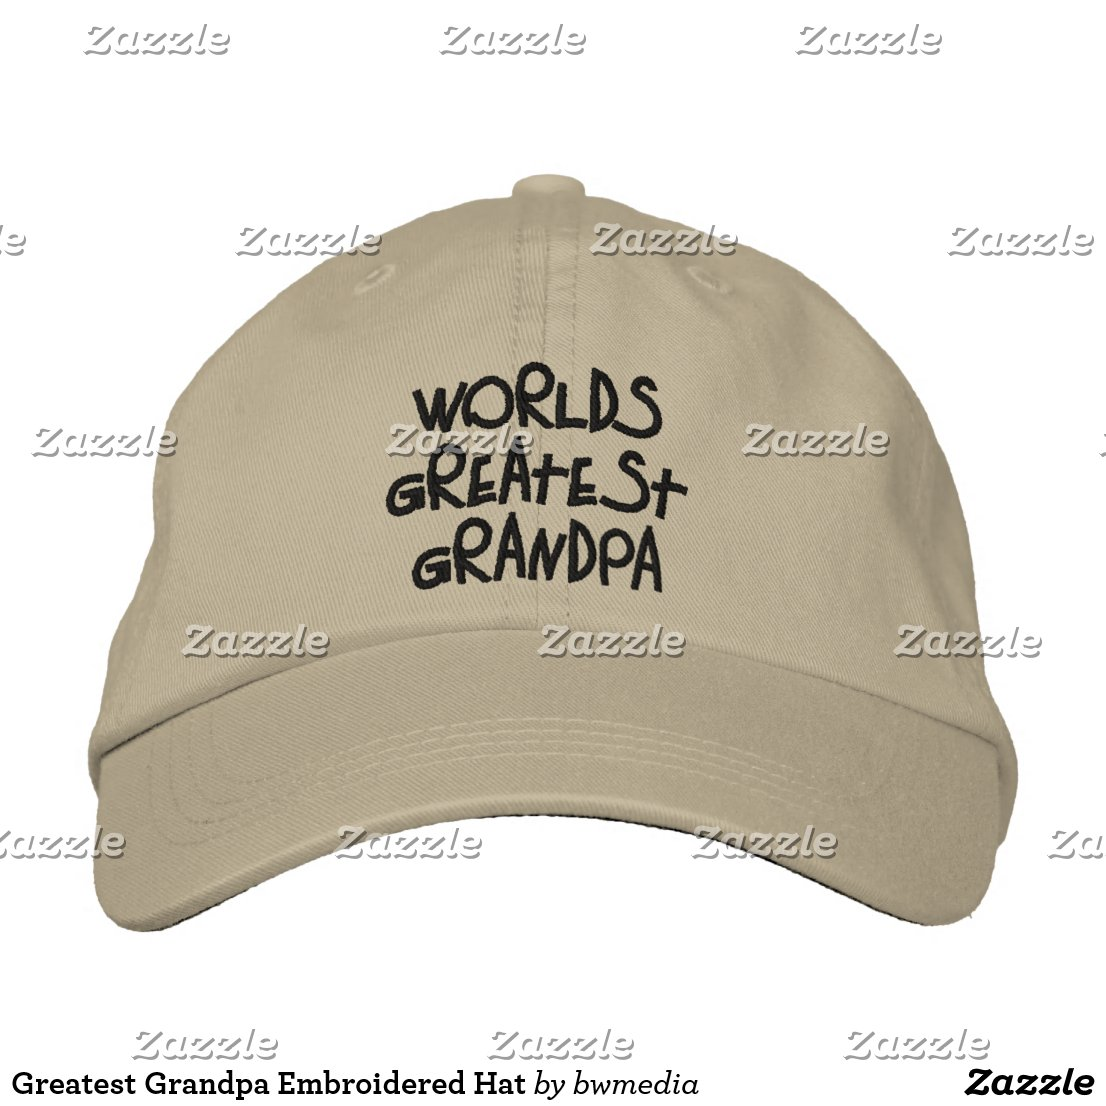 Greatest Grandpa Embroidered Hat